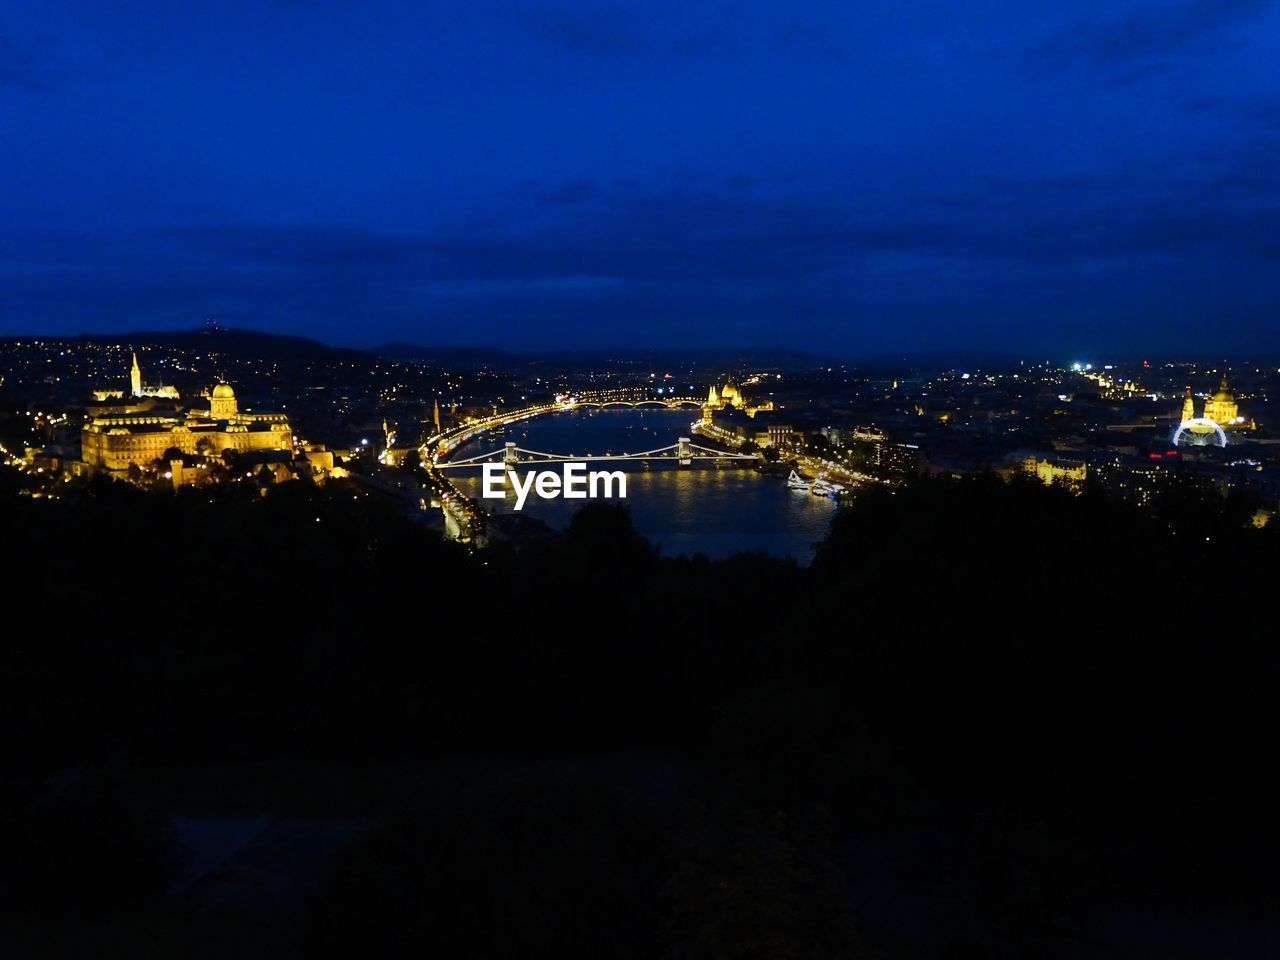 architecture, illuminated, night, built structure, city, building exterior, cityscape, sky, no people, nature, water, building, cloud - sky, outdoors, residential district, travel destinations, river, high angle view, chain bridge